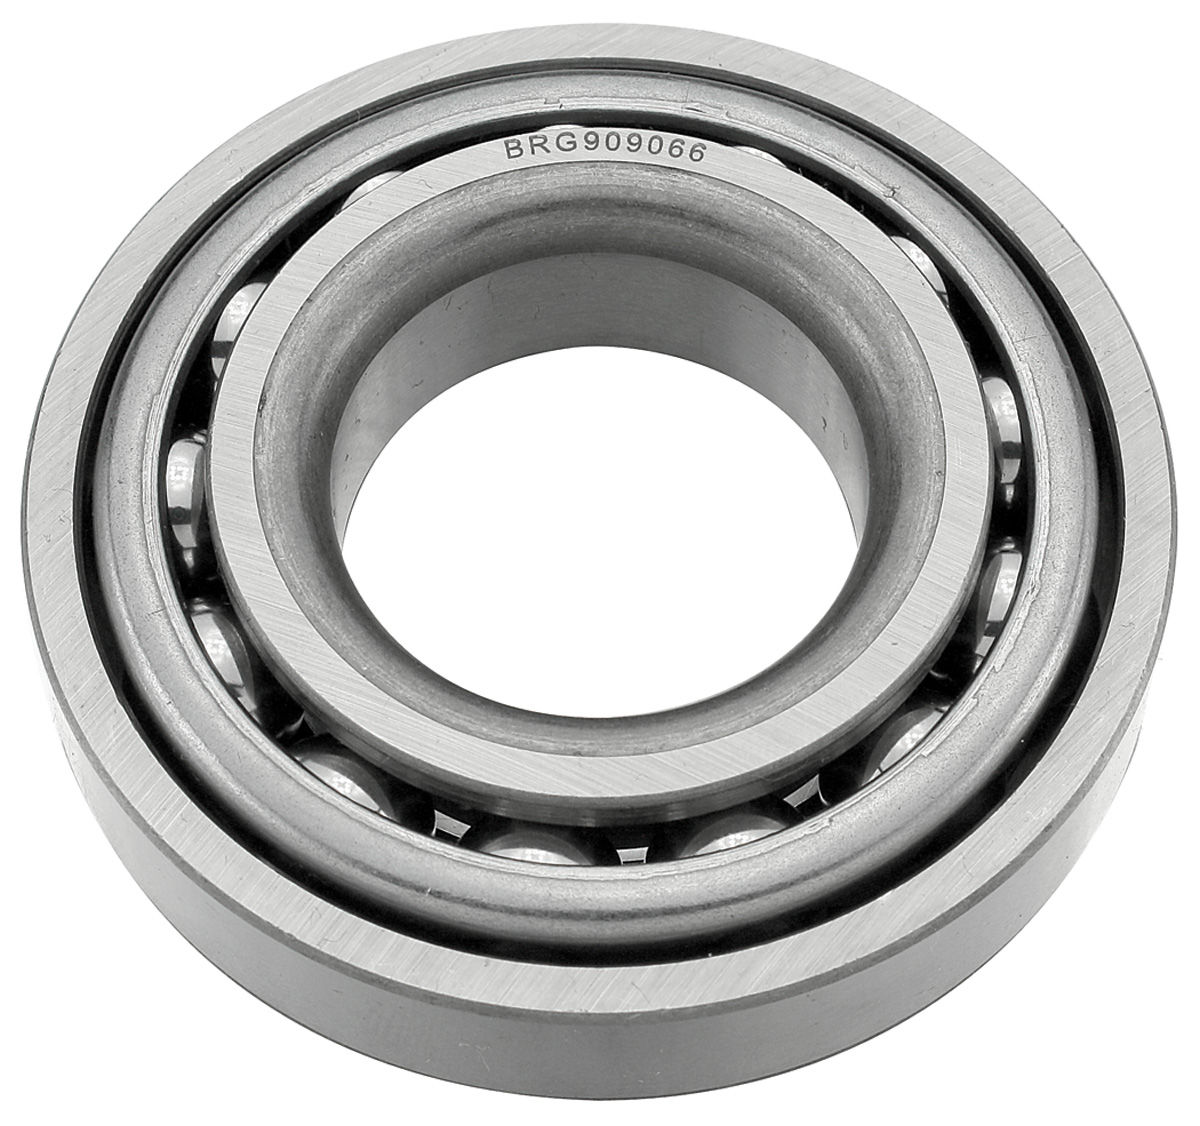 Commercial Front Axle : Kanter cadillac wheel axle bearing front inner